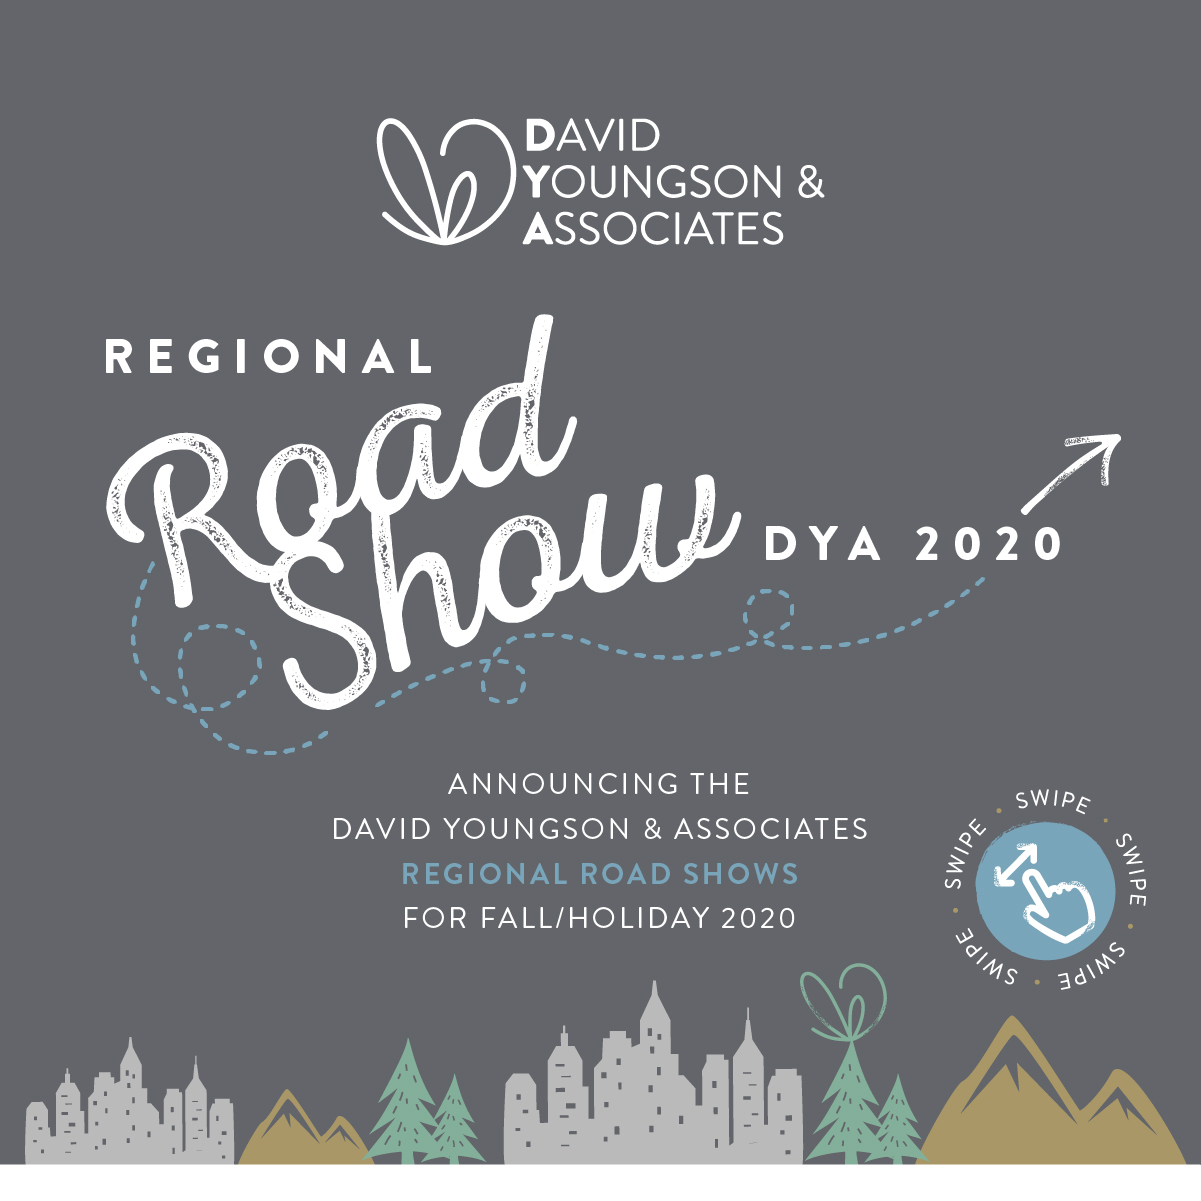 DYA Road Show Announced